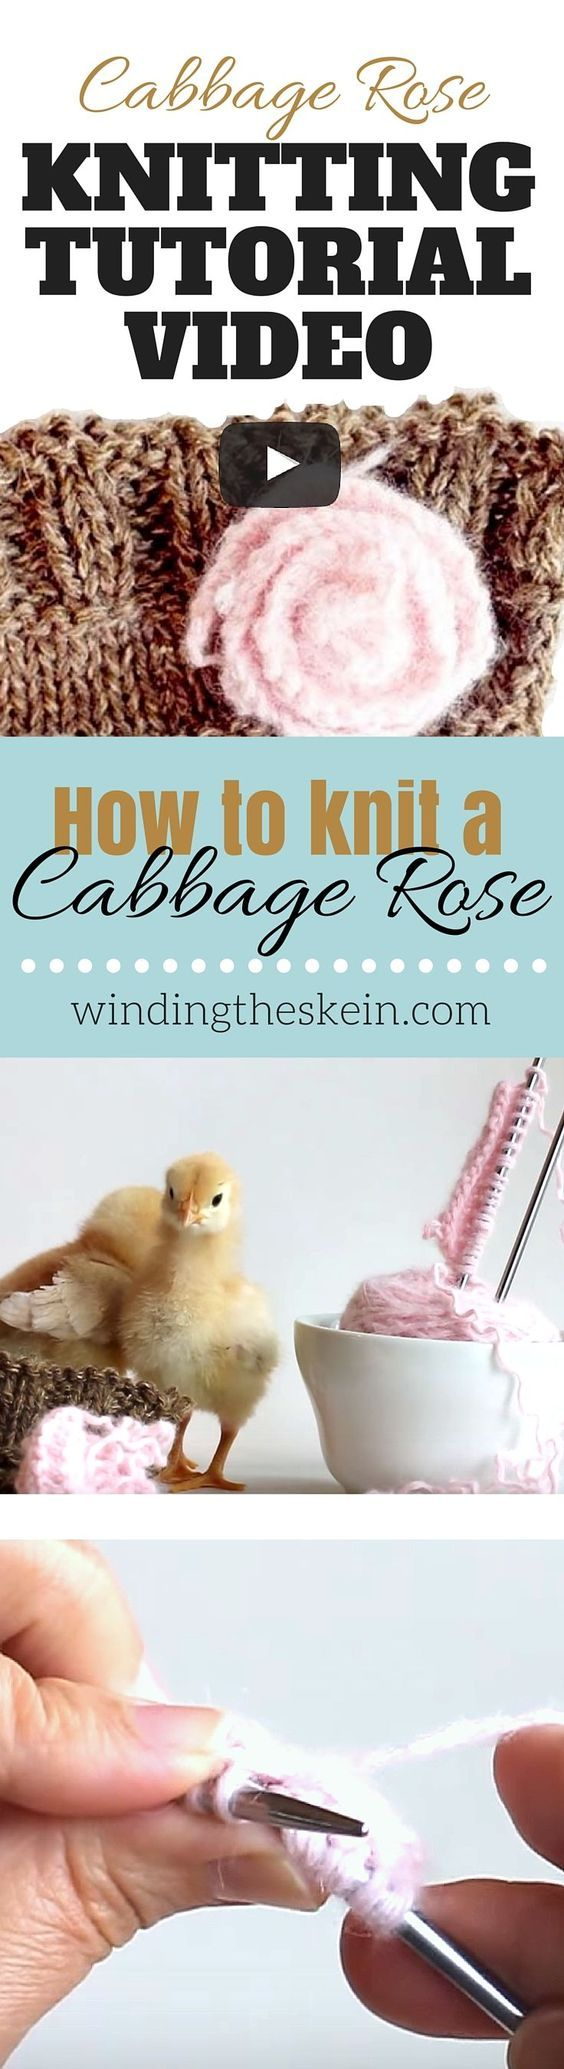 Looking for ways to embellish your hand crafts? Watch the video tutorial to see how easy it is to knit a cabbage rose! www.windingtheskein.com #knitting #flowers #tutorial #video #diy: